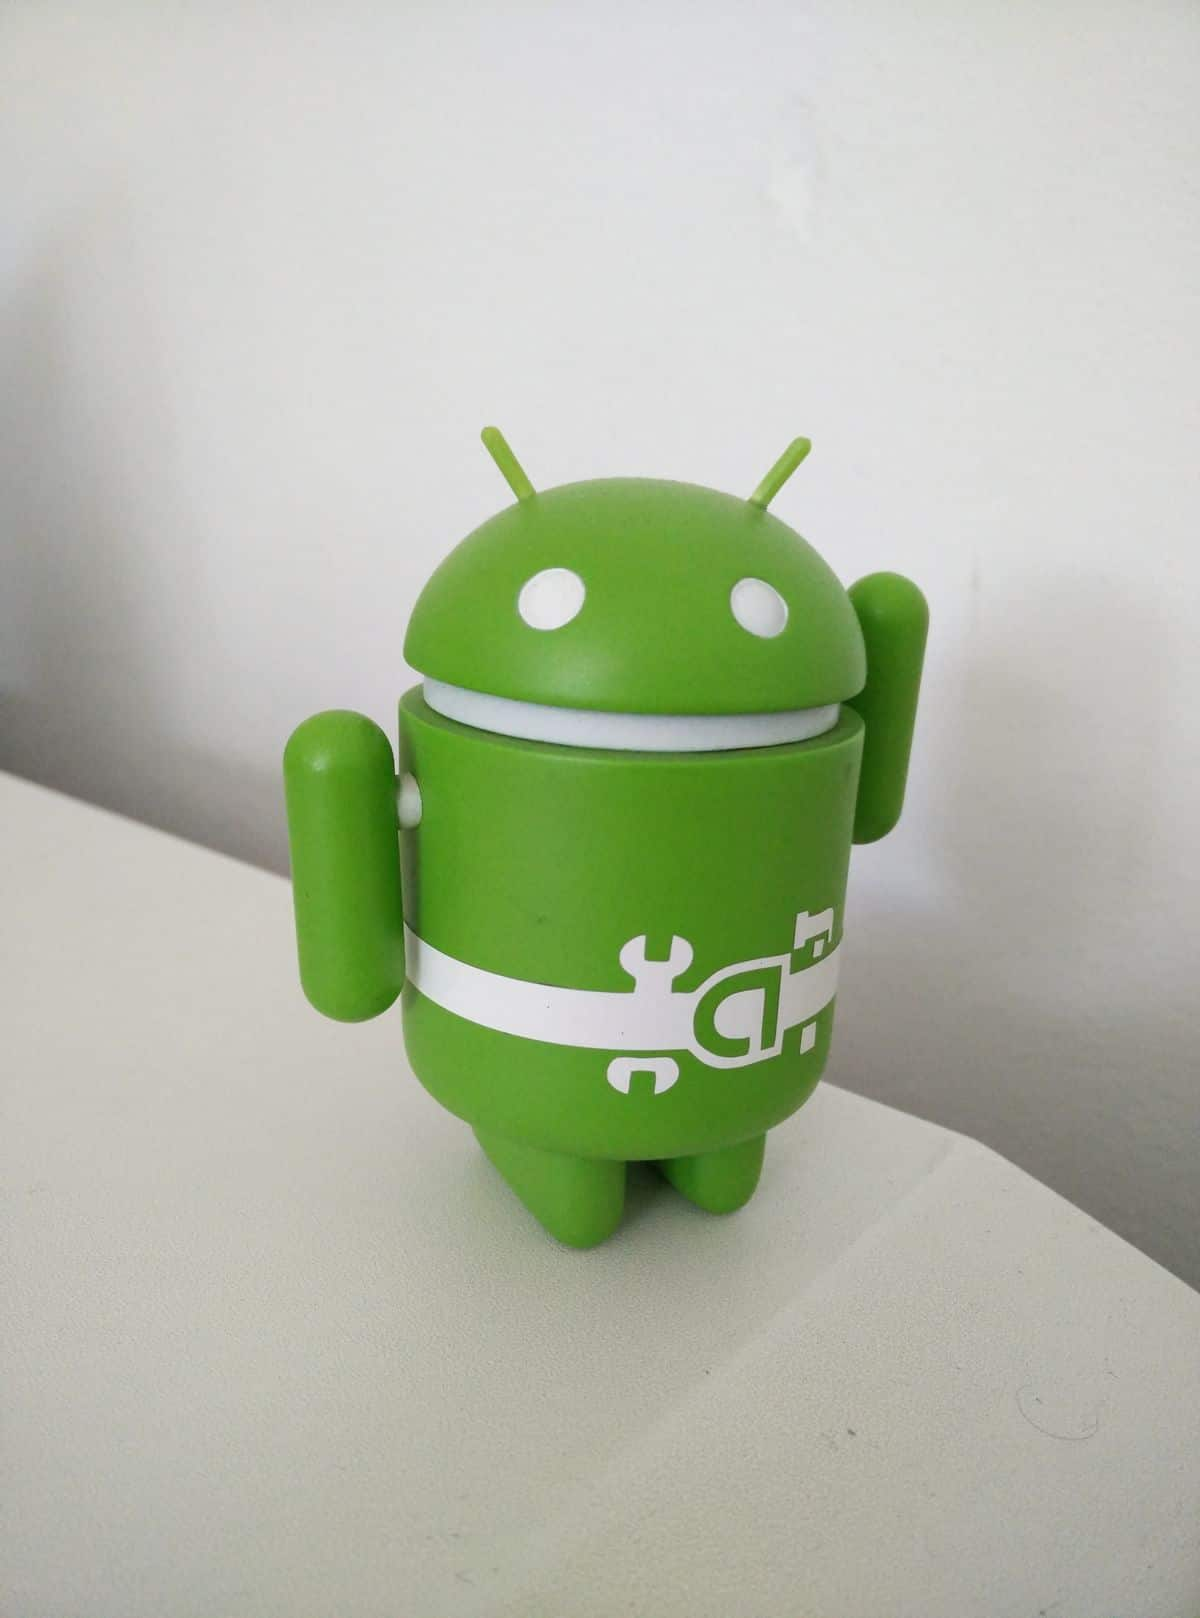 A small, green plastic Android figurine lifts one arm as though waving.